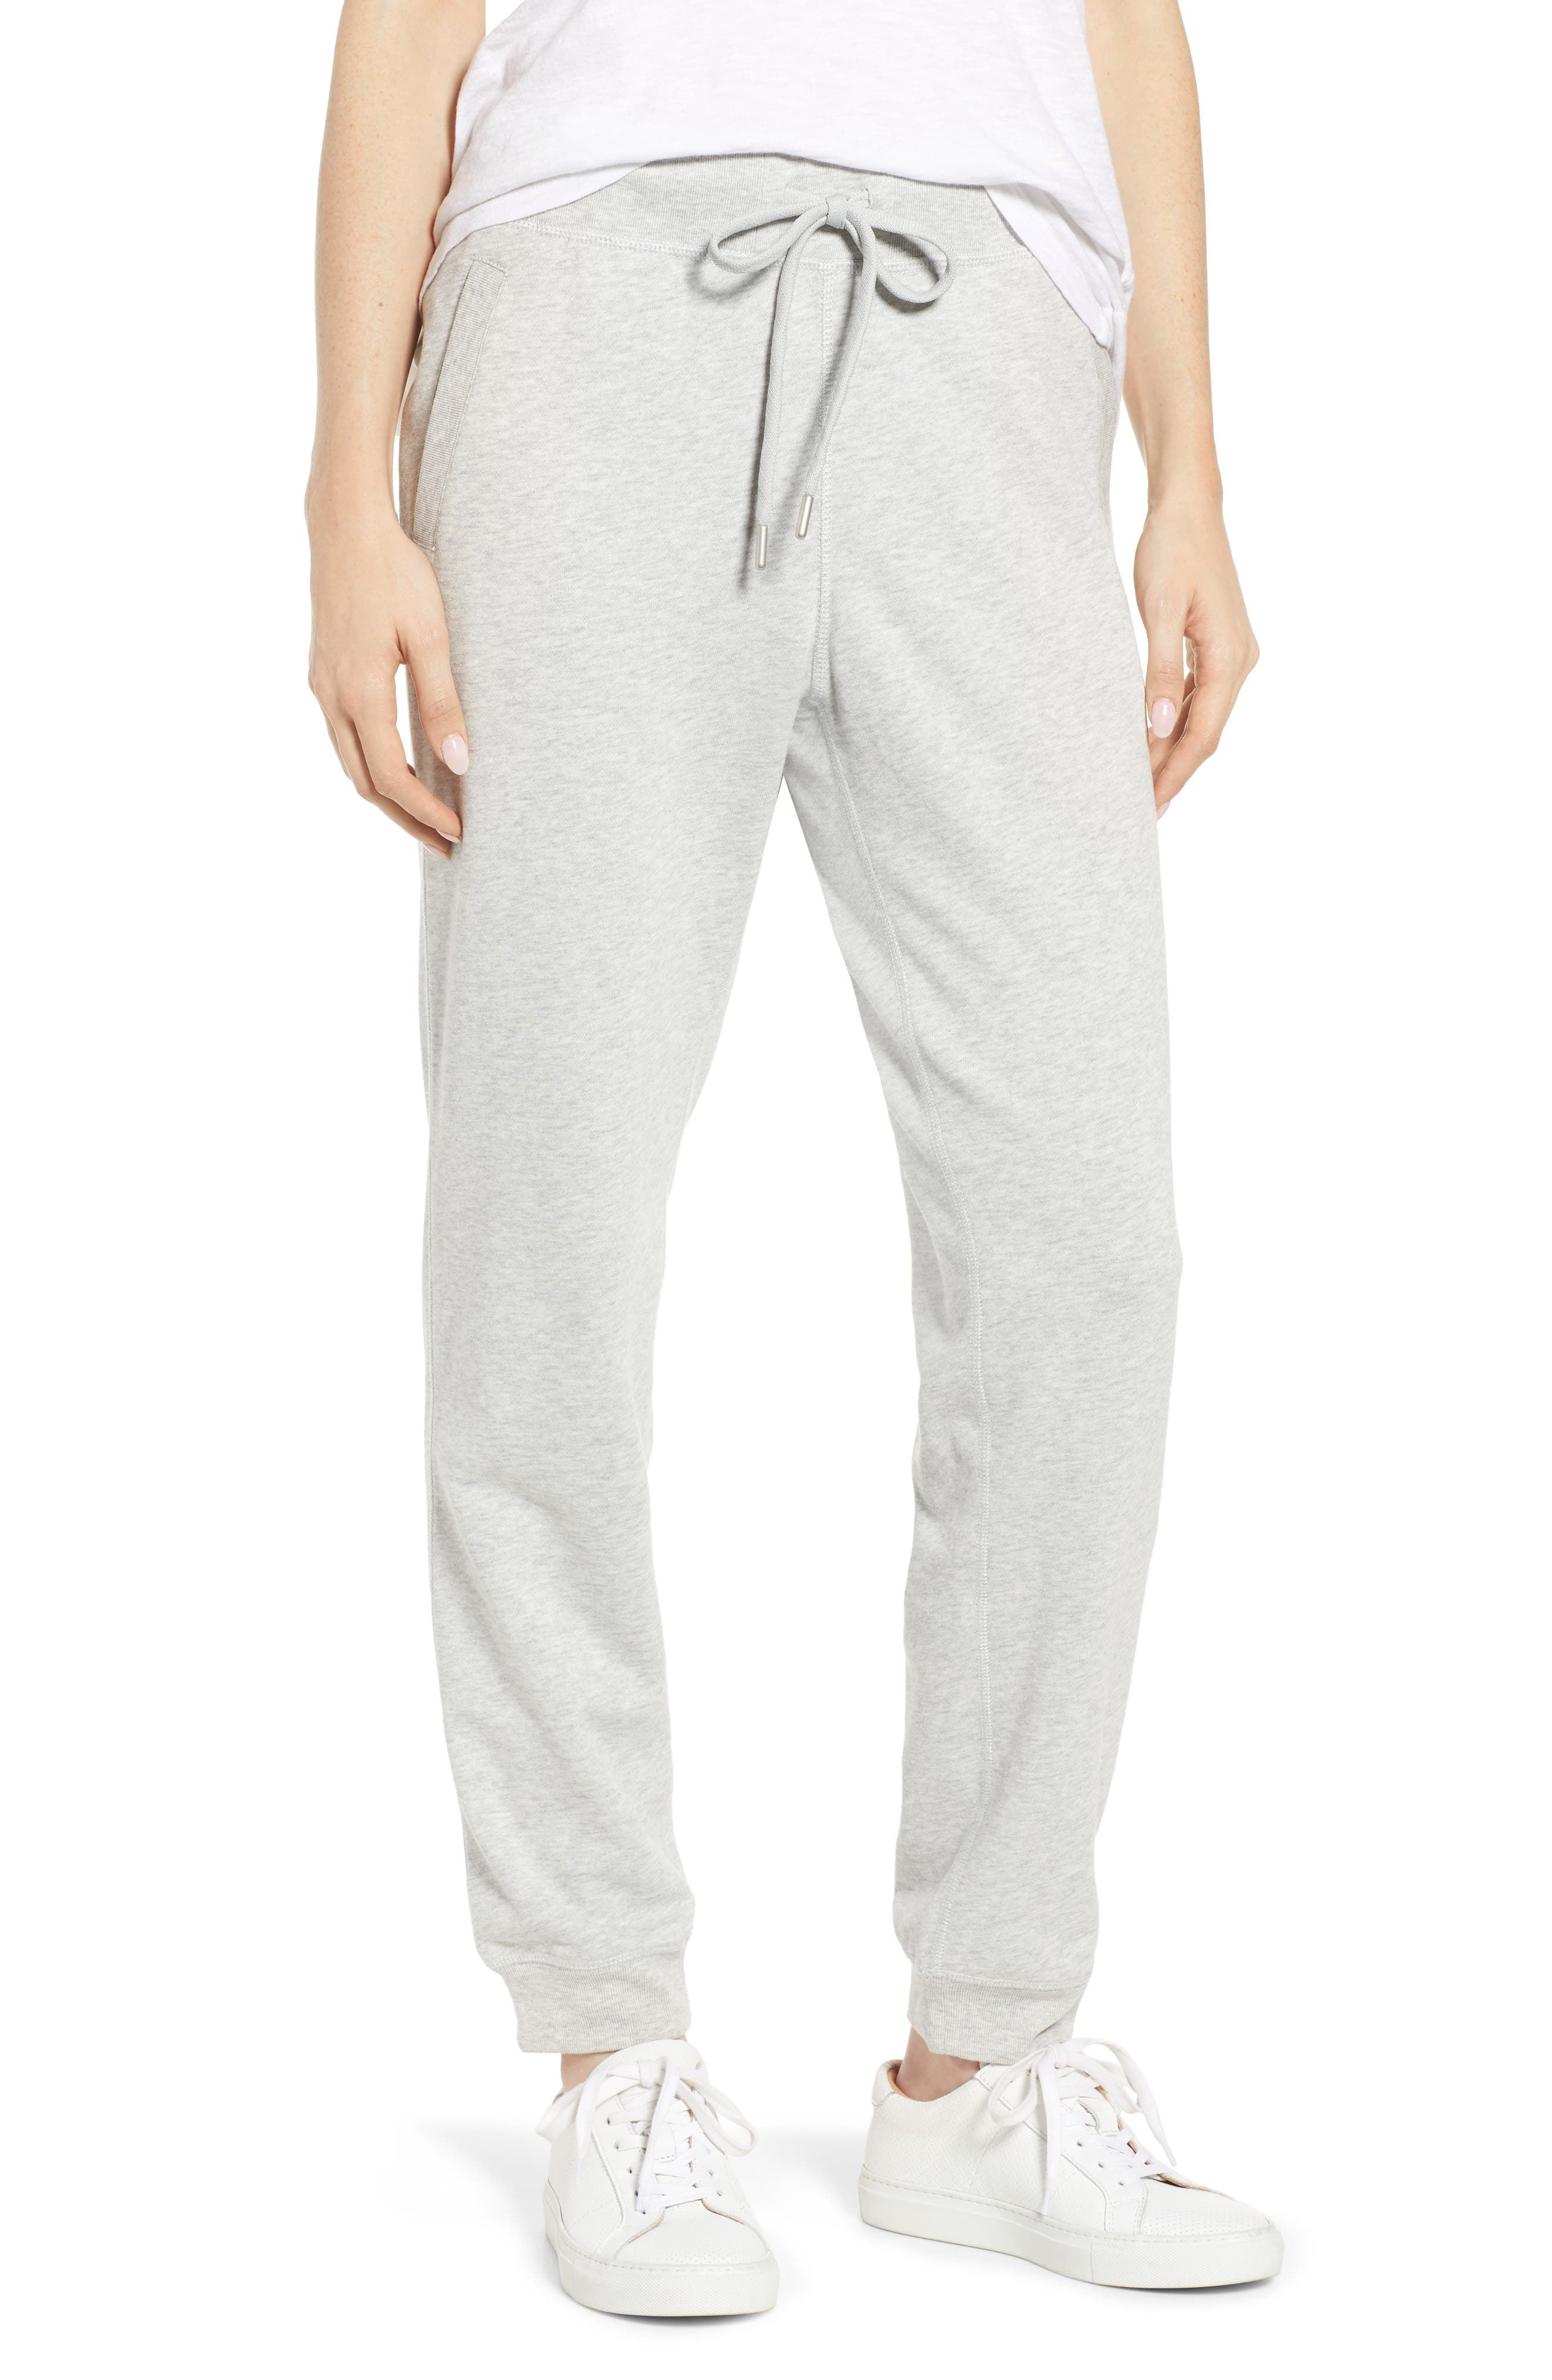 Women's Tommy Bahama Sea Glass Knit Jogger Pants